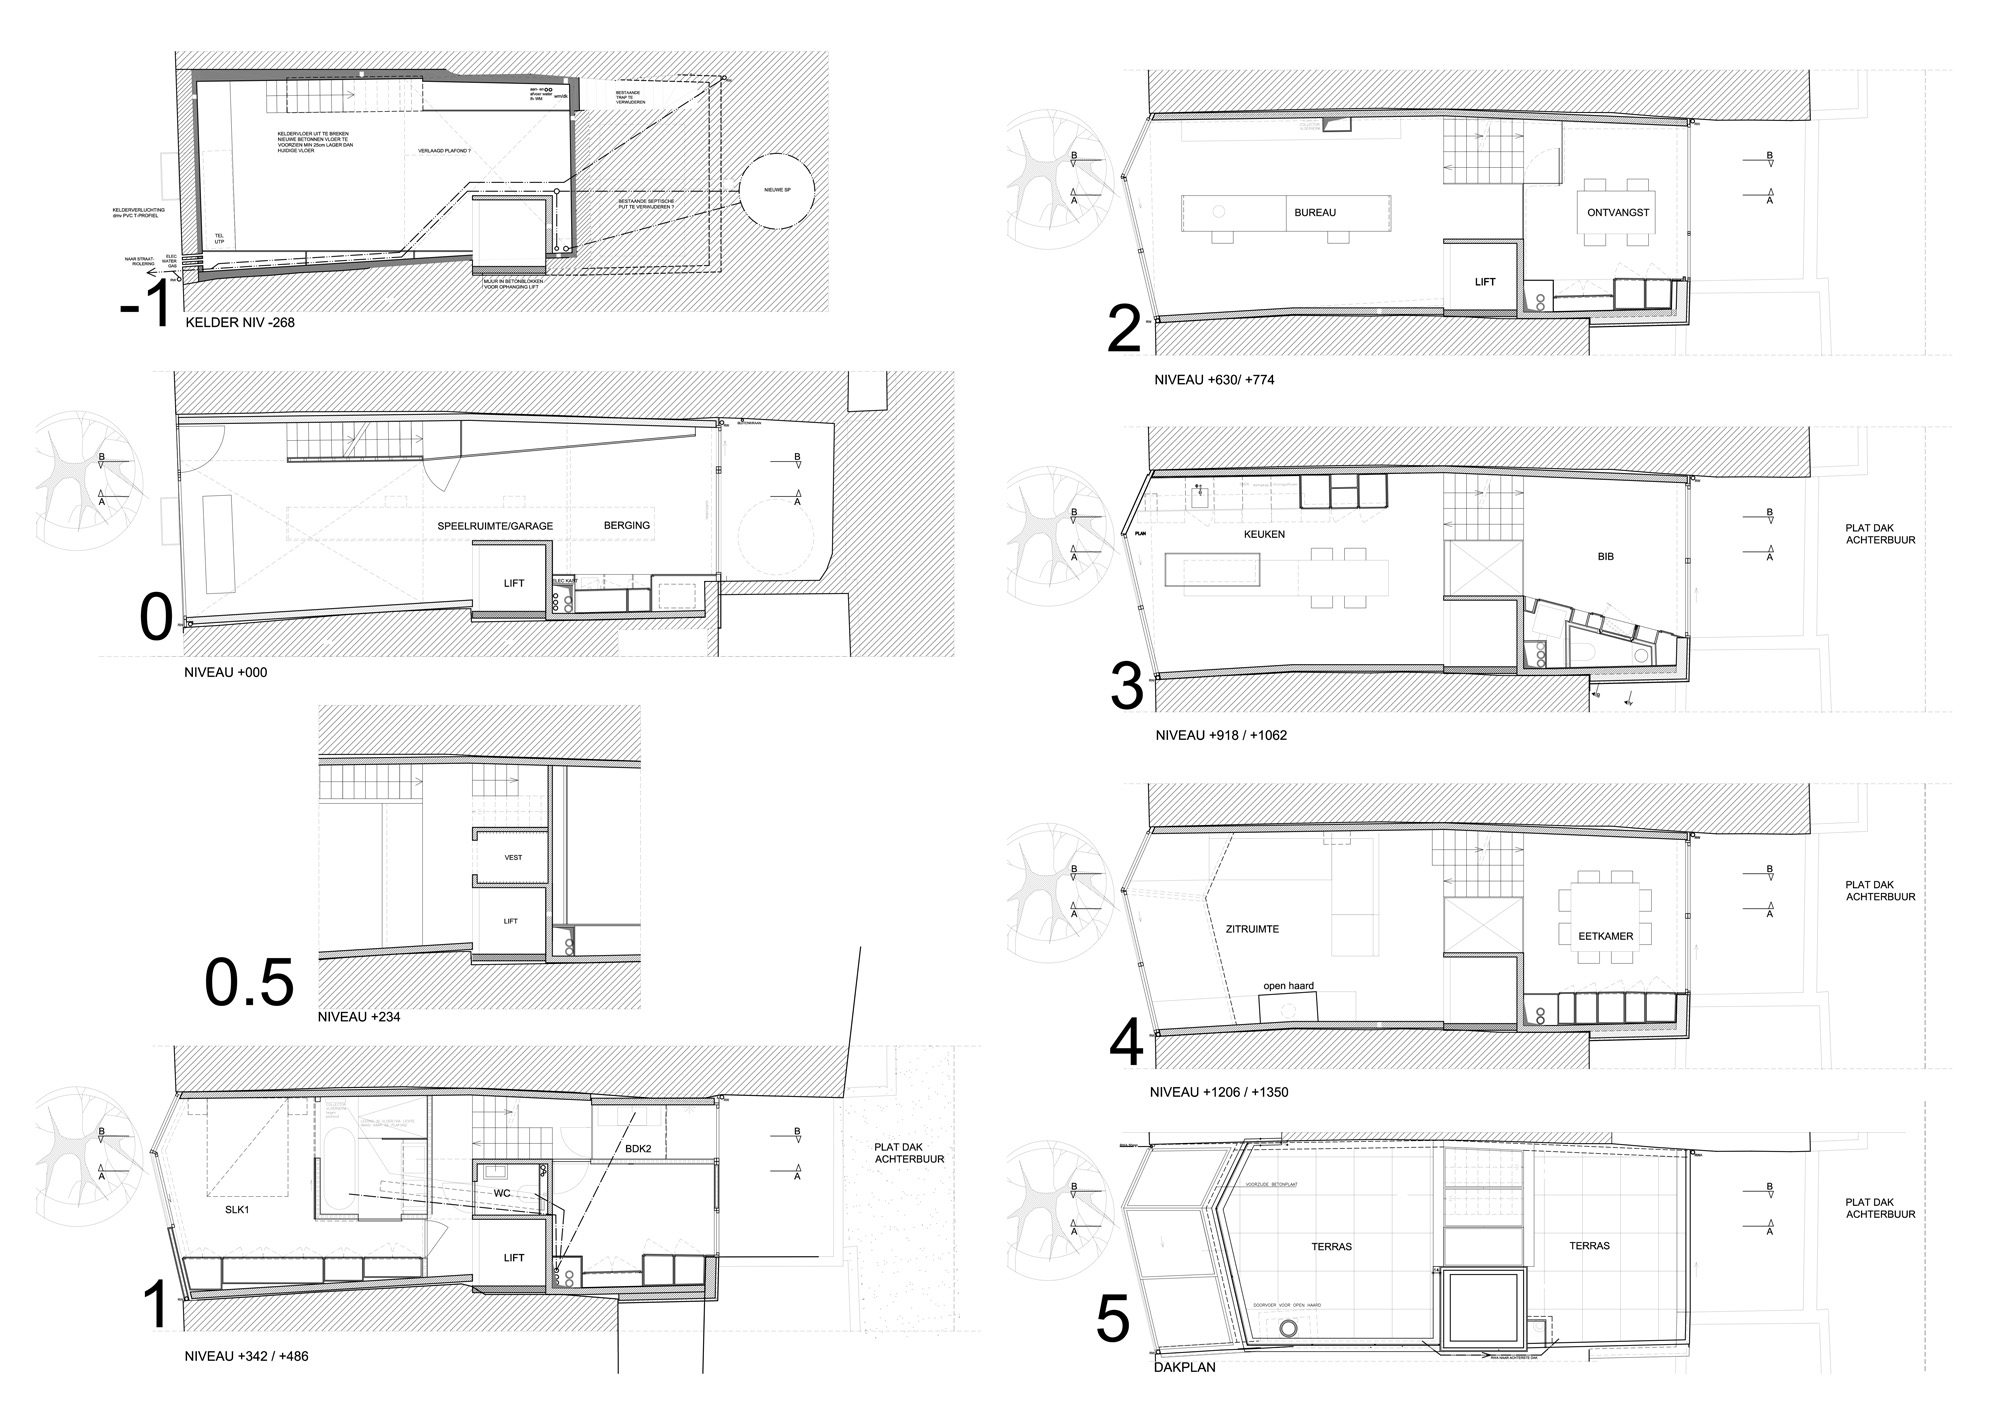 New 3 Story Townhouse Plans likewise Tandem Garage Floor Plans together with 2 Story Townhouse Floor Plan With Garage further Townhouse Designs Garage besides Modern Townhouse Plan On Projects. on modular townhouse plans